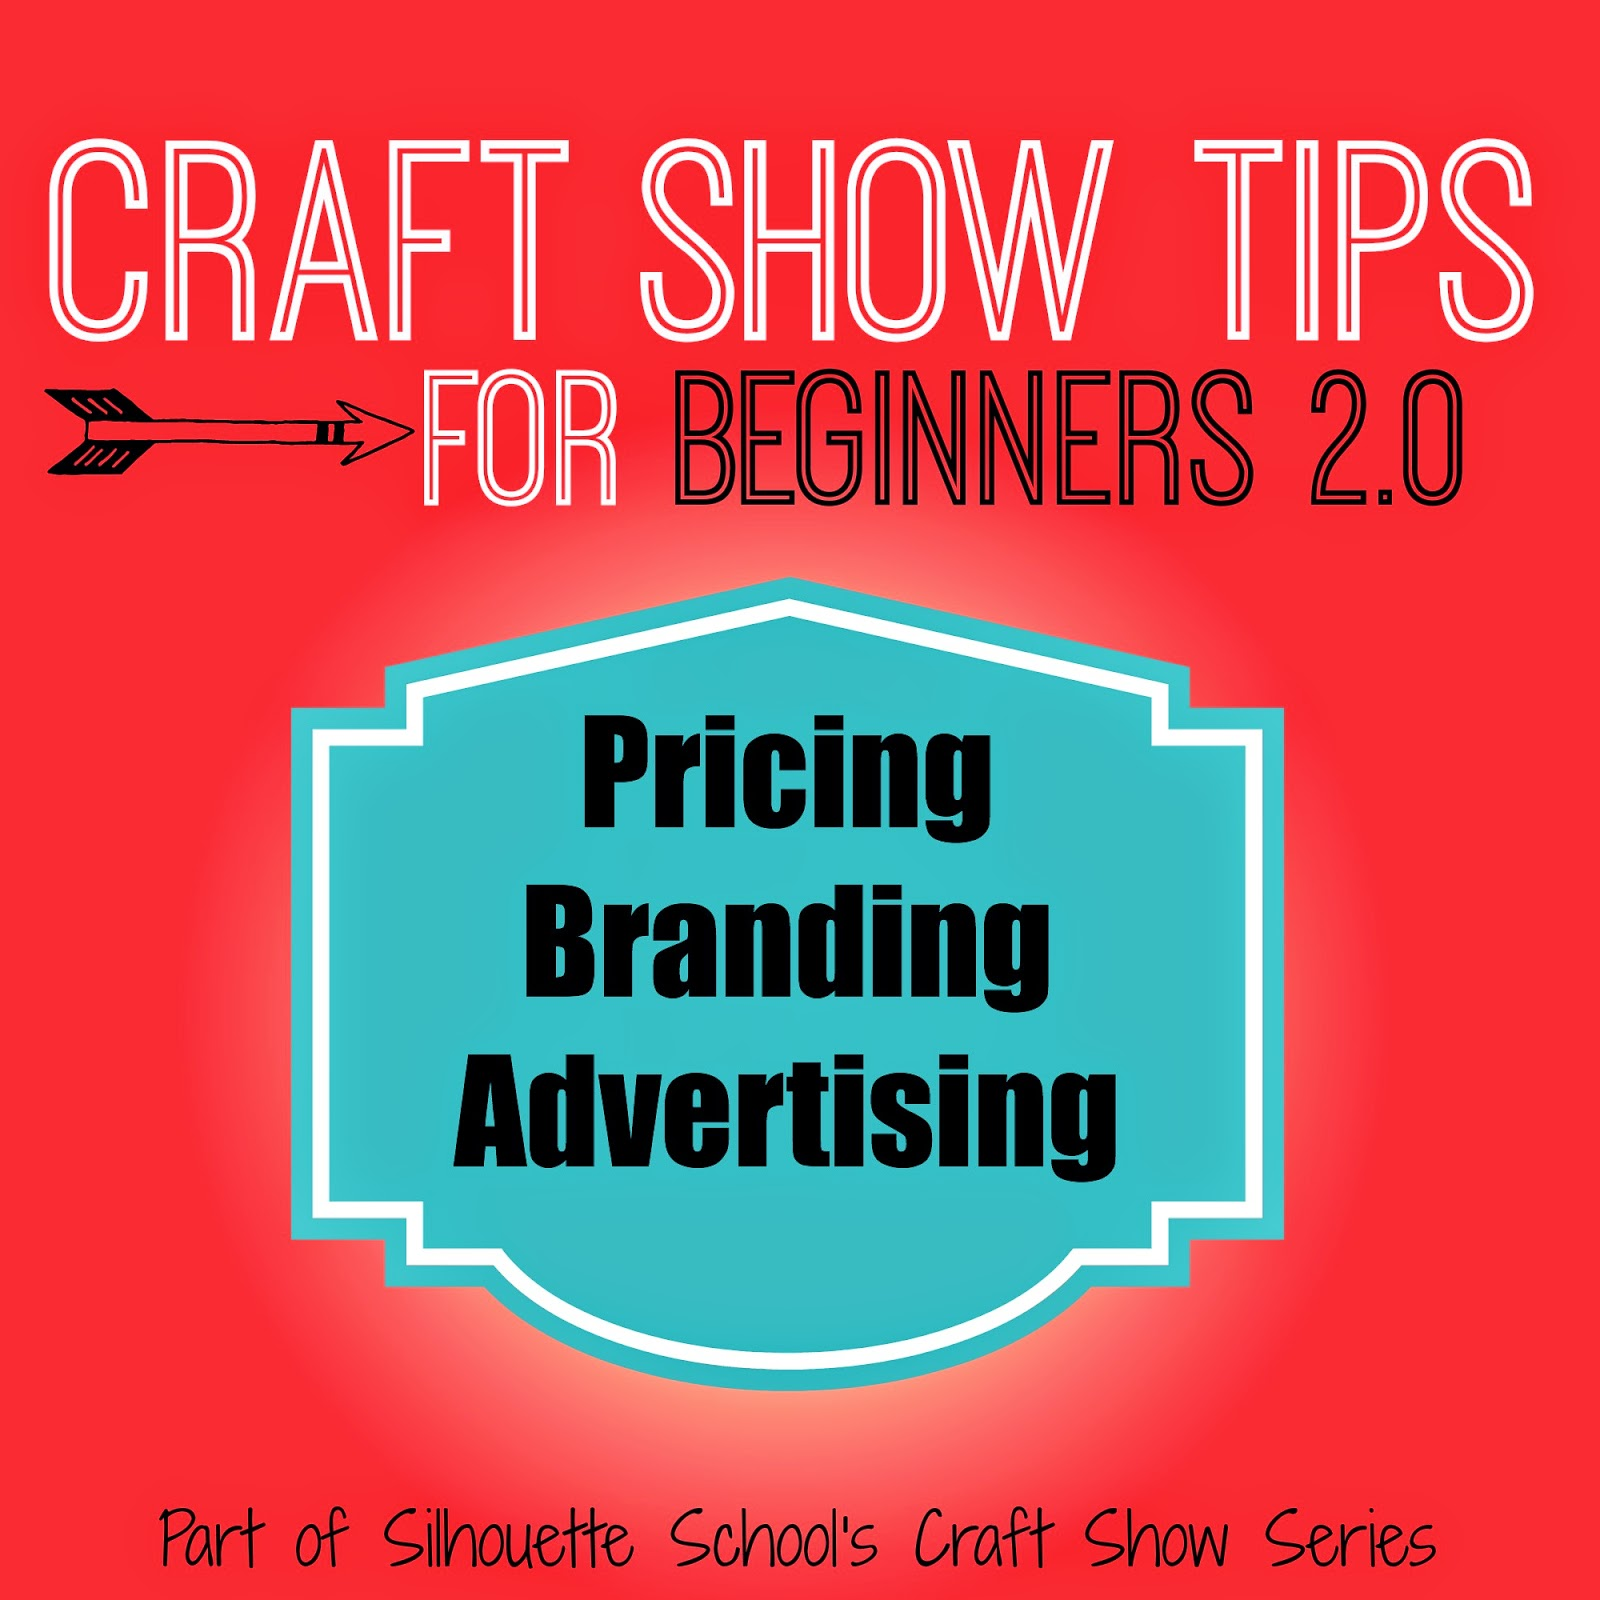 Craft show tip, beginners, pricing, advertising, branding